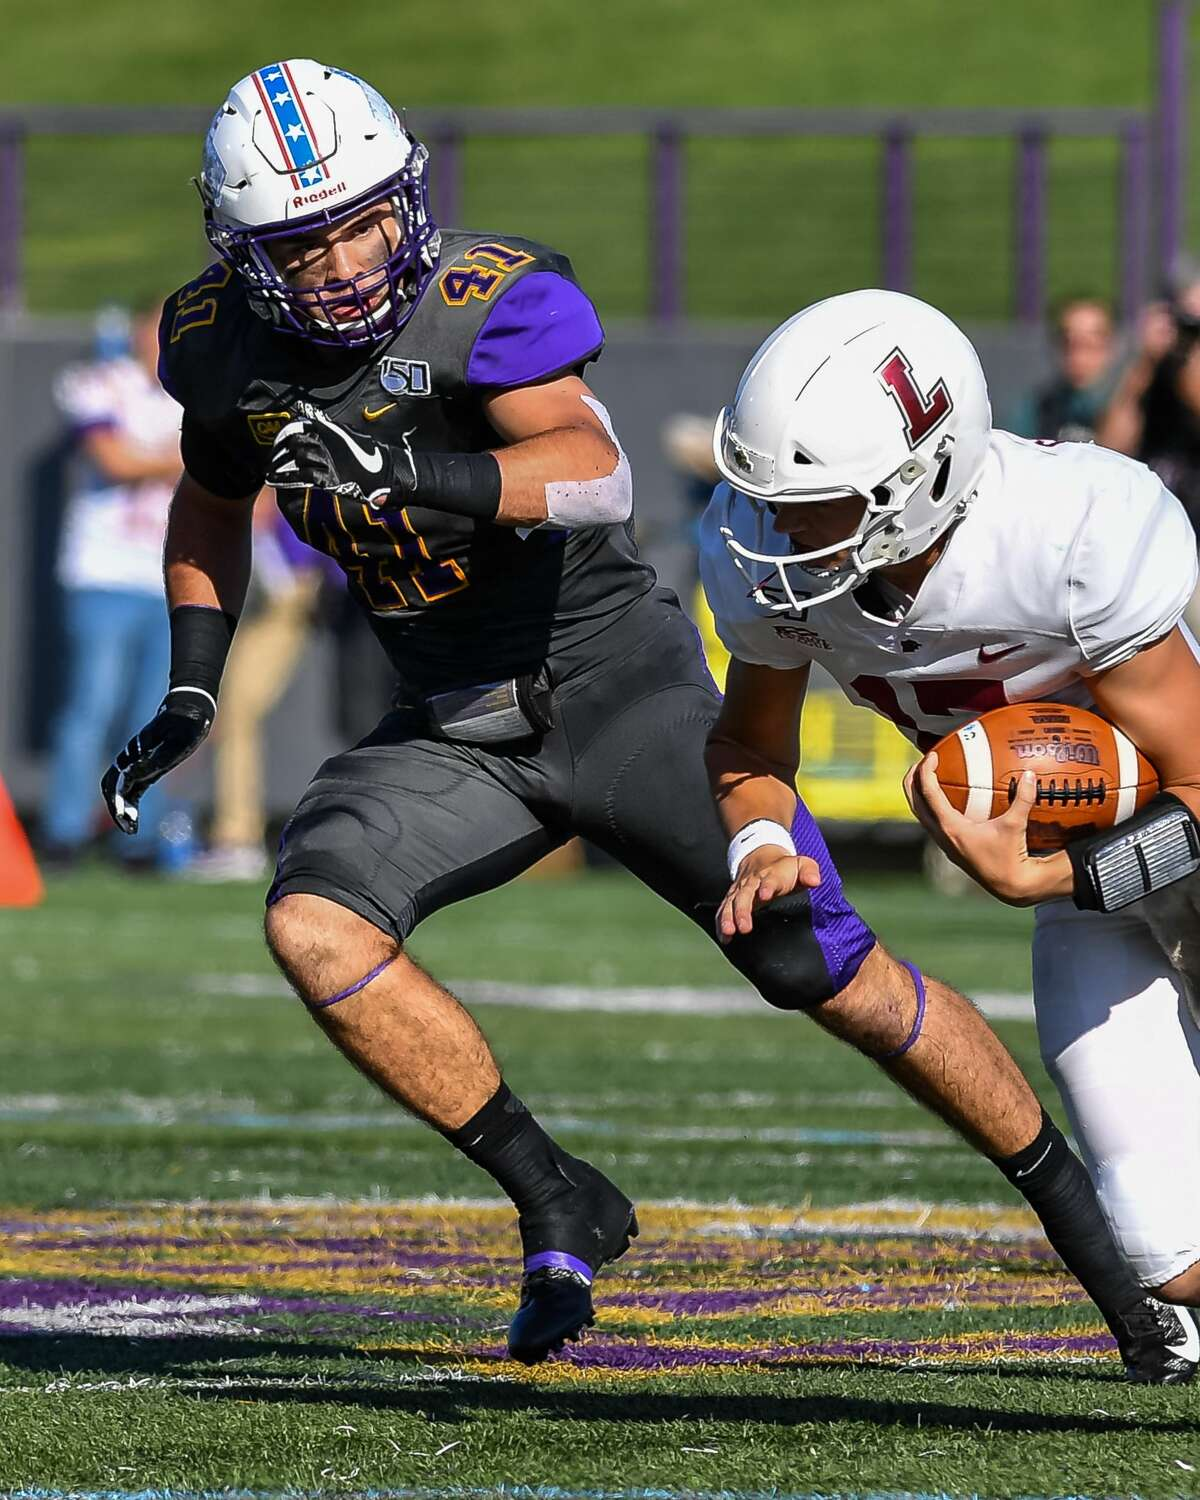 UAlbany's A.J. Mistler is a former walk-on who received a full scholarship prior to this season. (Bill Ziskin/UAlbany athletics)